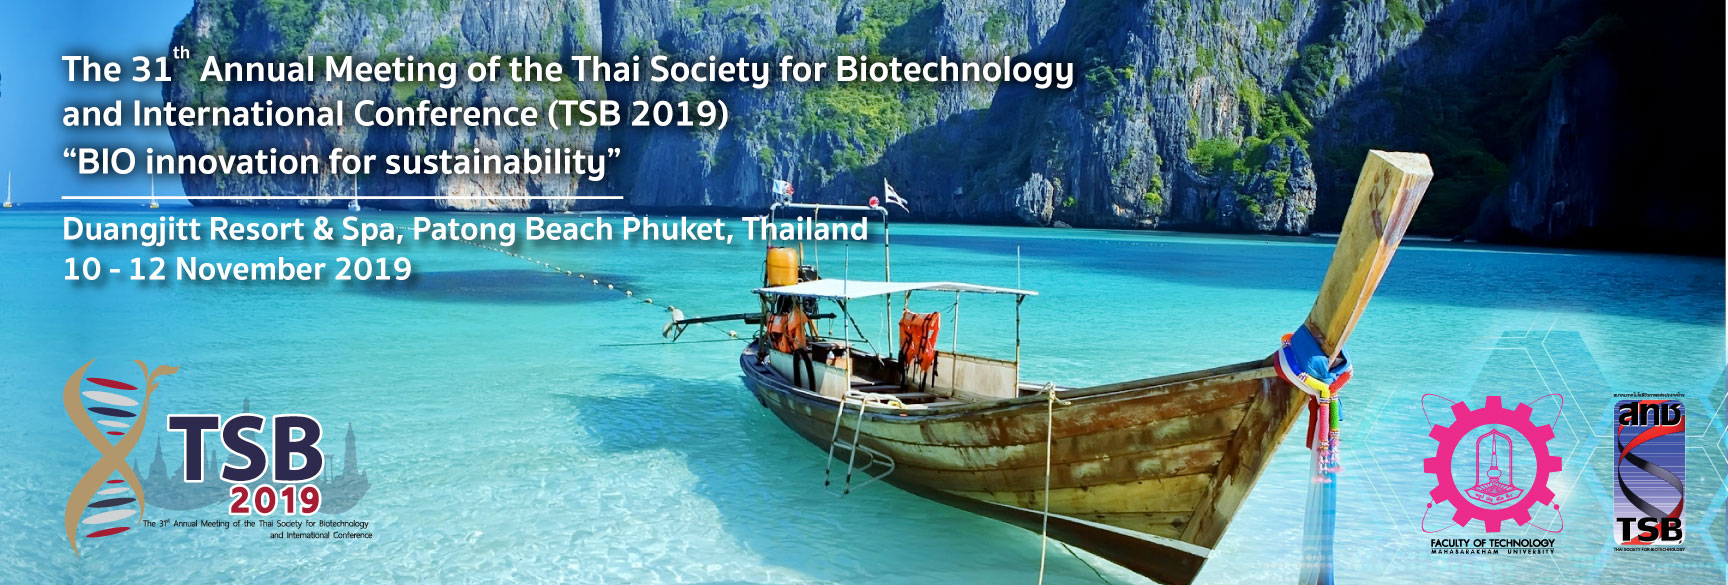 The 31 Annual Meeting of the Thai Society for Biotechnology and International Conference - Event Banner